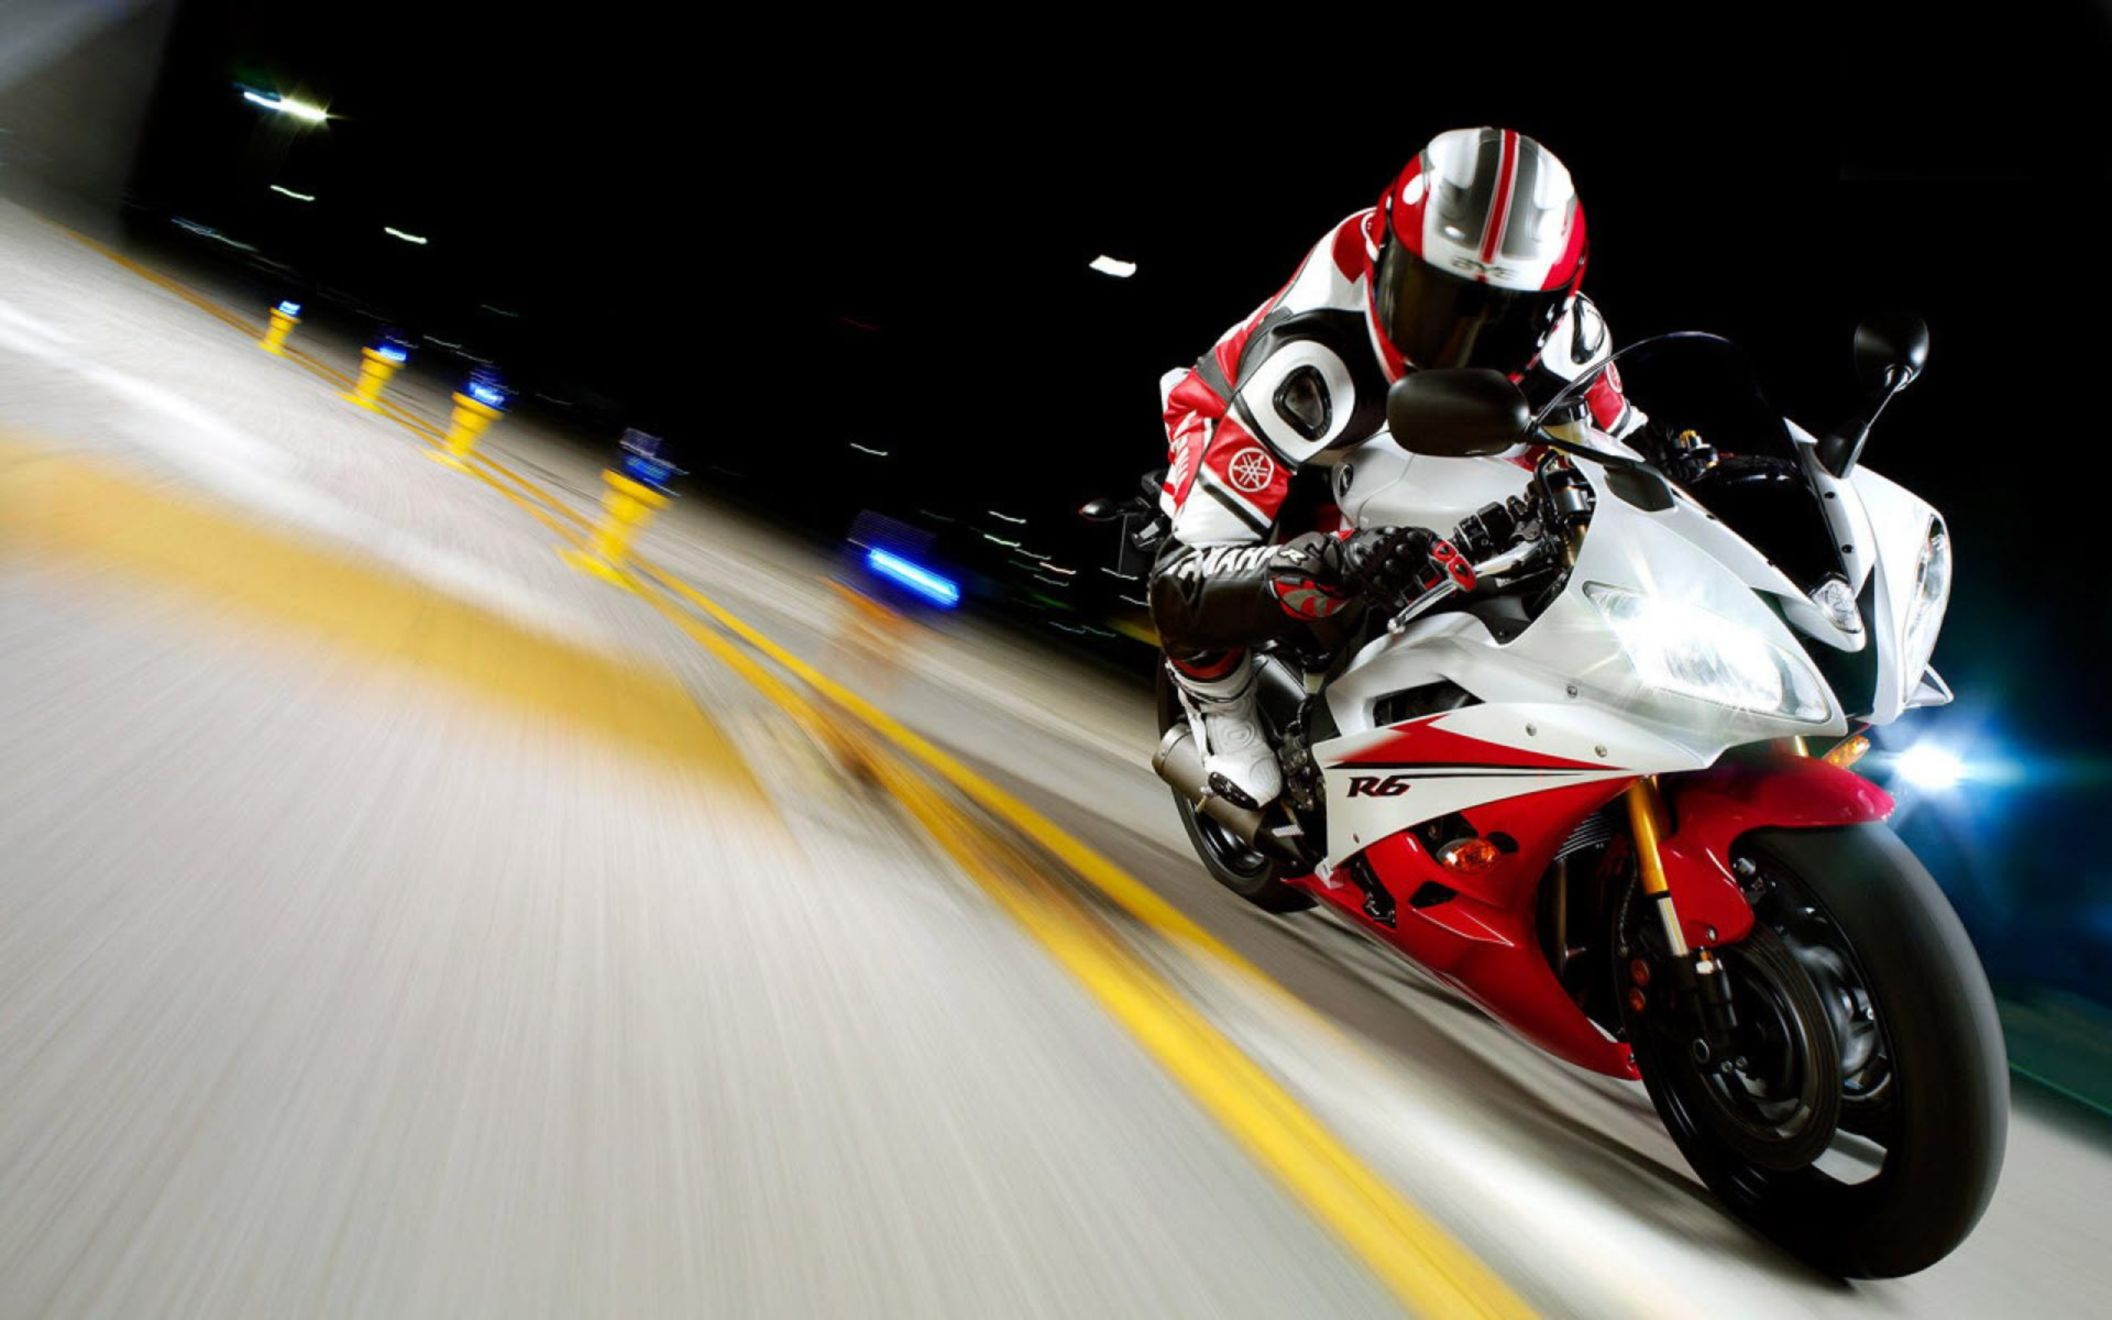 Download free HD 2007 Yamaha Yzfr6 Race Wide Wallpaper, image